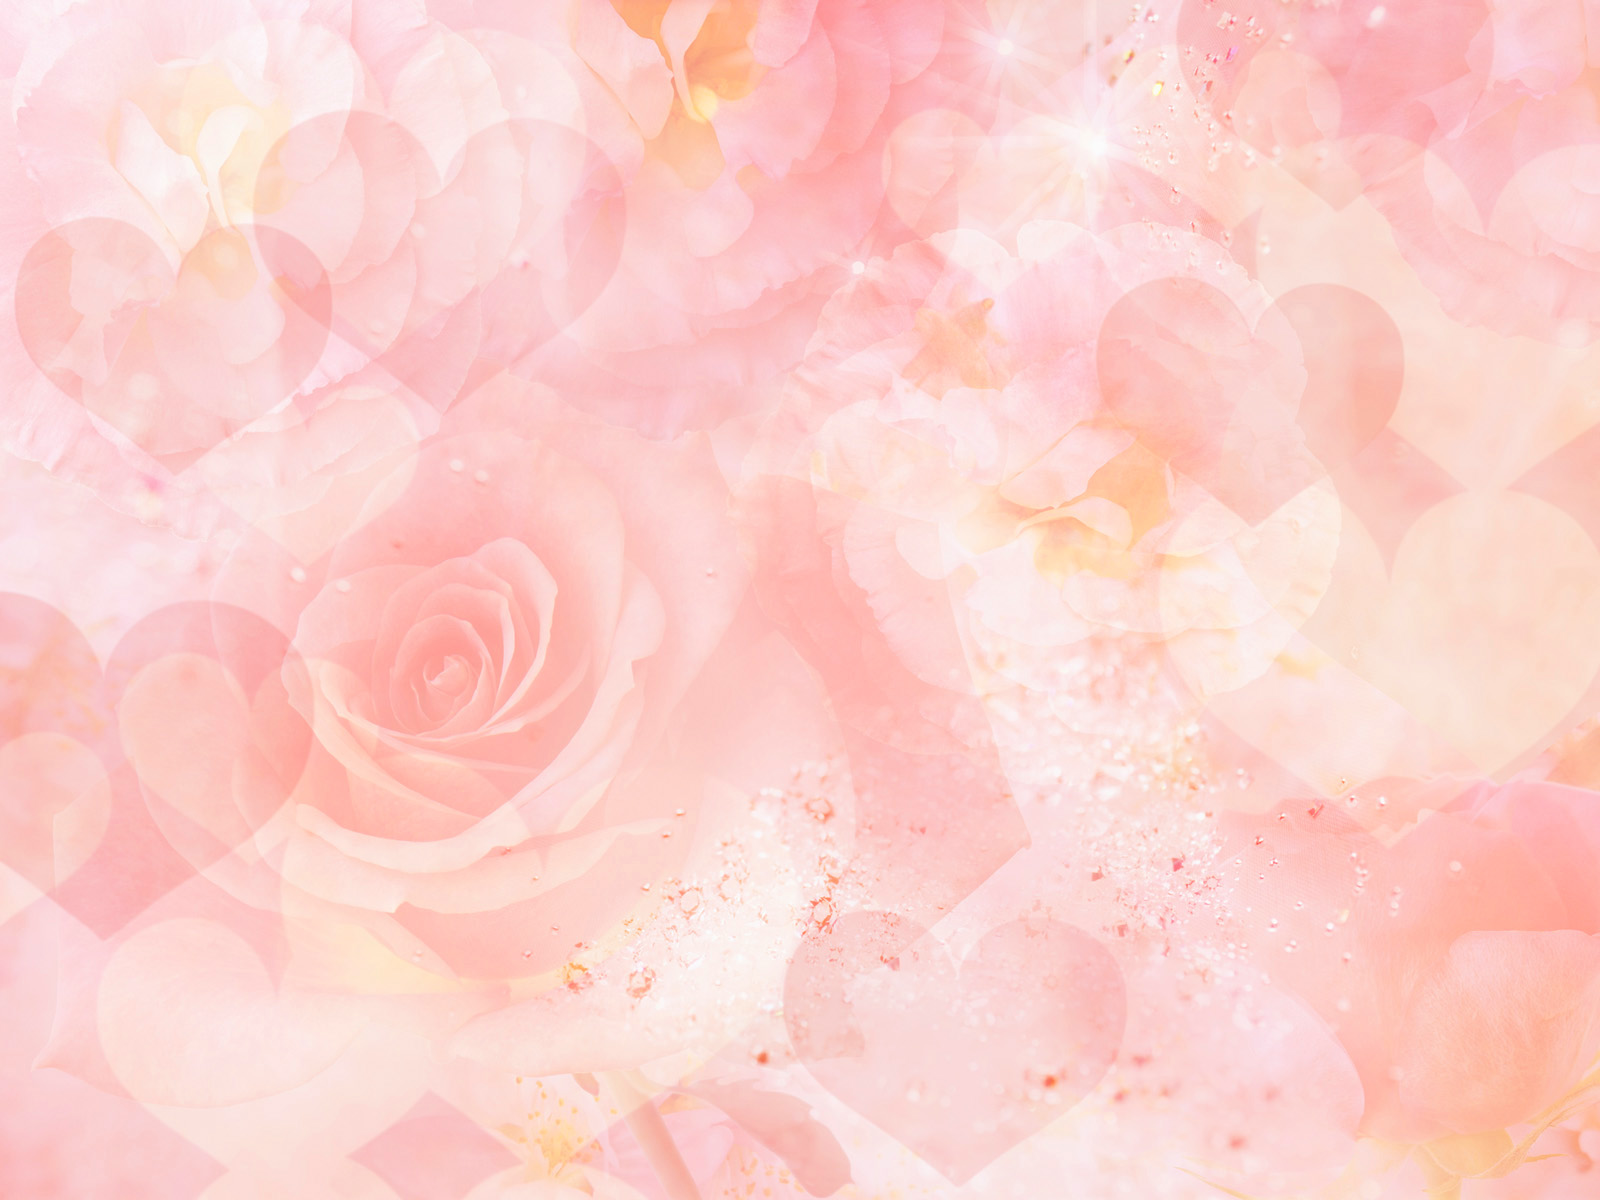 Flowers for Gt Light Pink Rose Background Wallpaper 1600x1200px 1600x1200